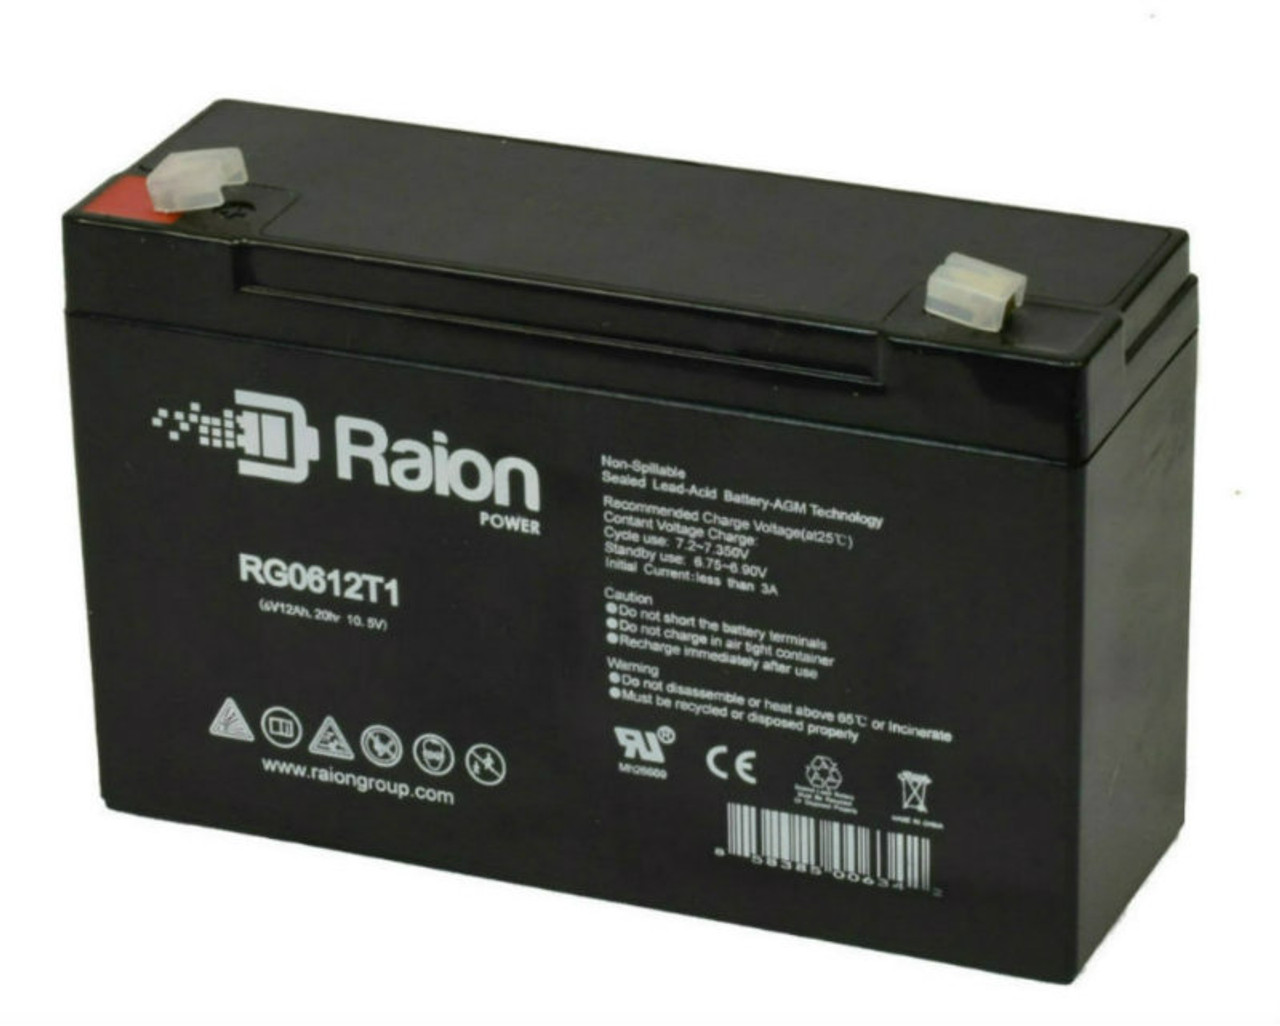 Raion Power RG06120T1 Replacement Battery Pack for Sonnenschein M200 emergency light